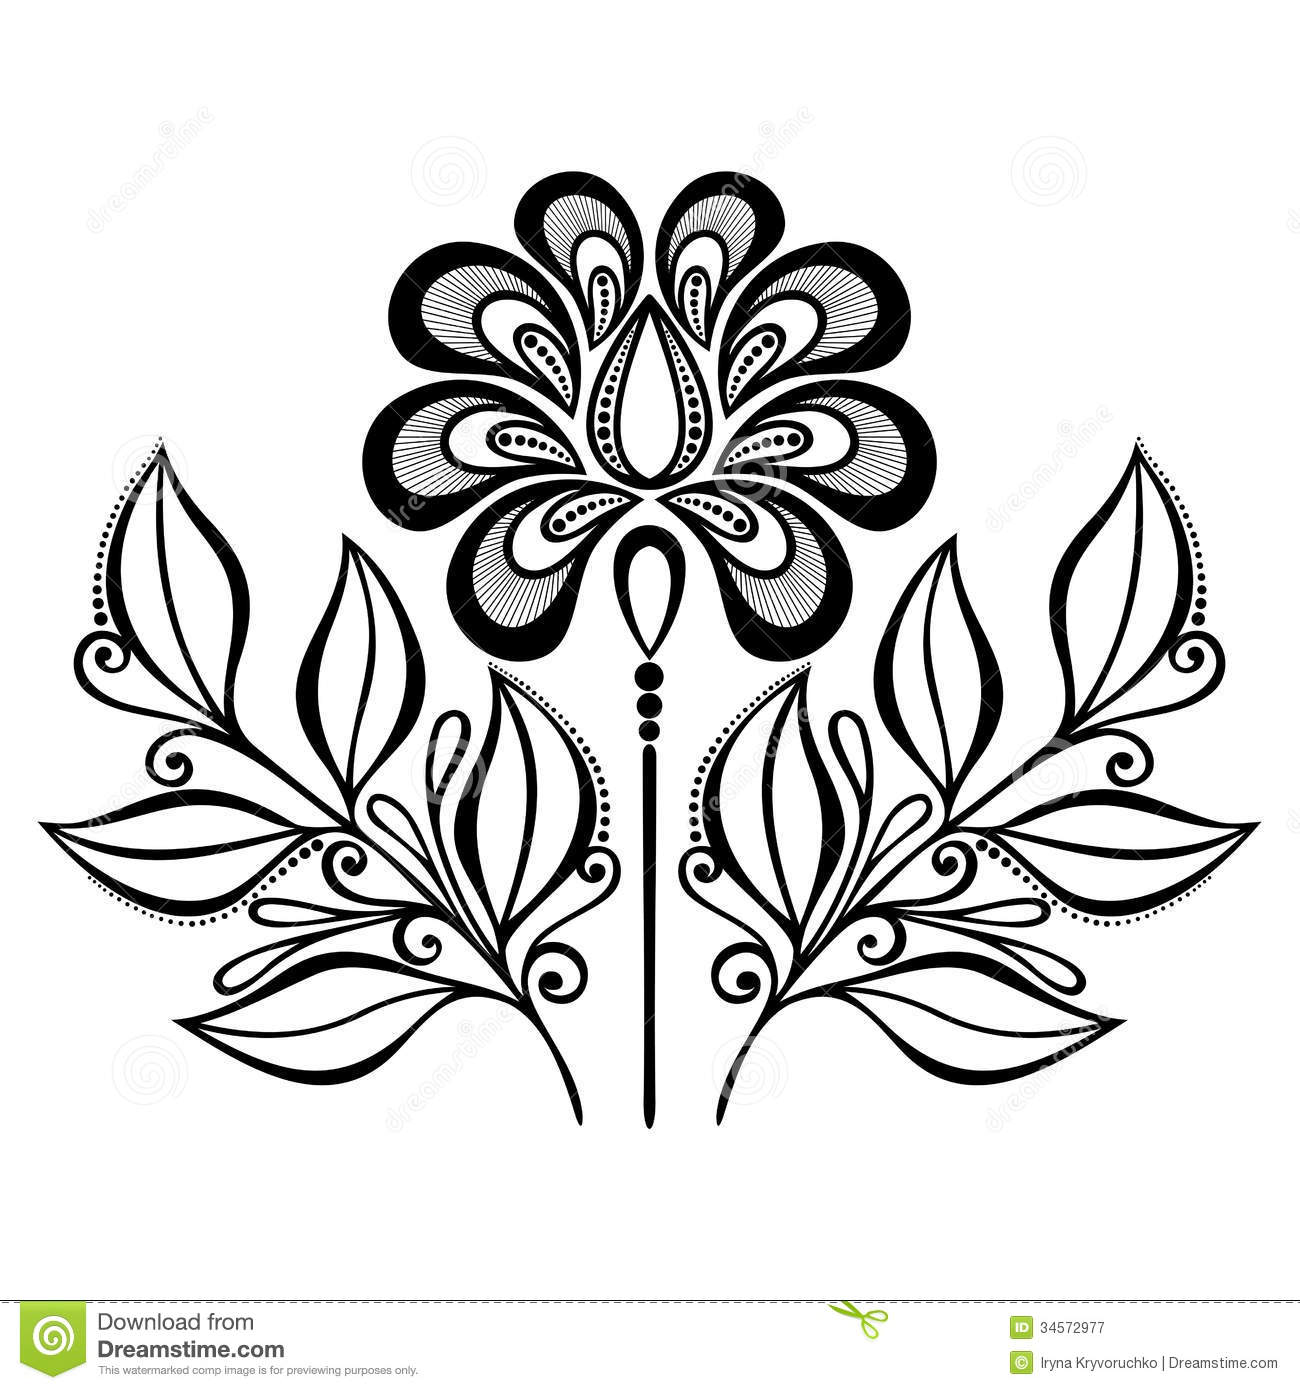 decorative flower with leaves - Decorative Flowers